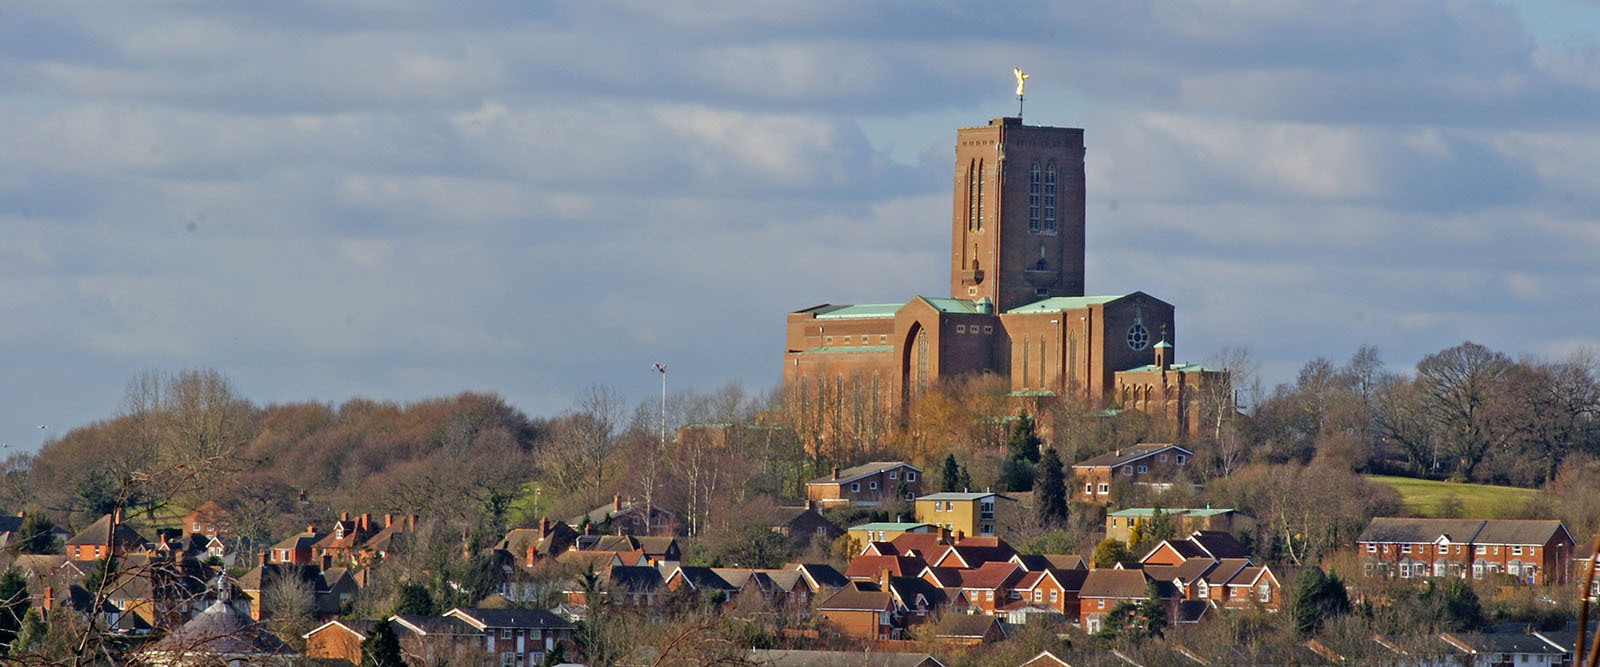 Guildford From Afar - the cathedral stands tall above the rest of the picturesque town.